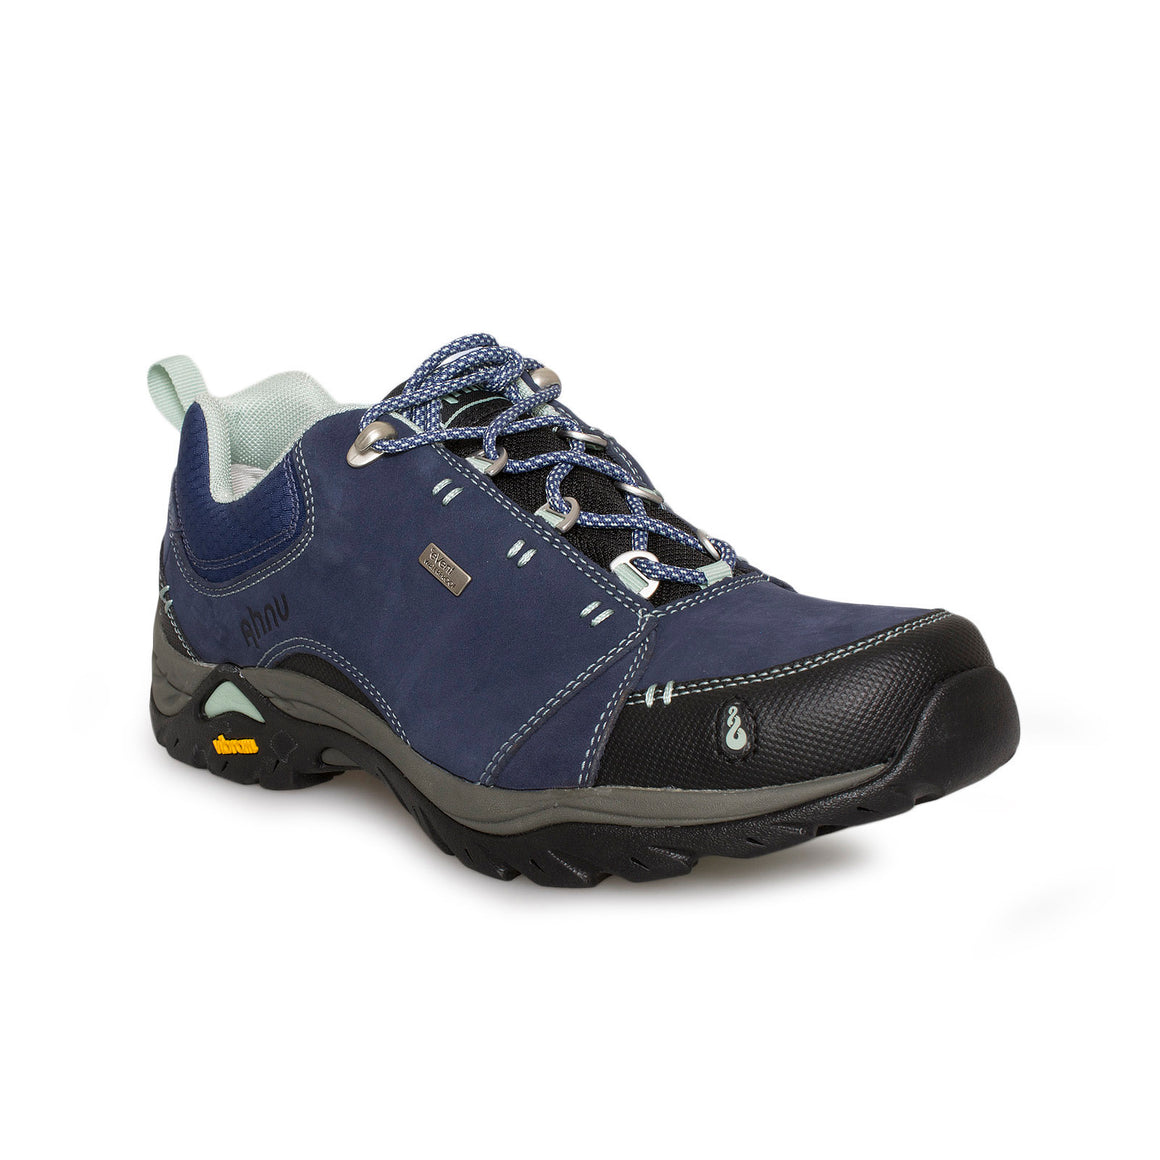 Ahnu Montara II Midnight Blue Boots